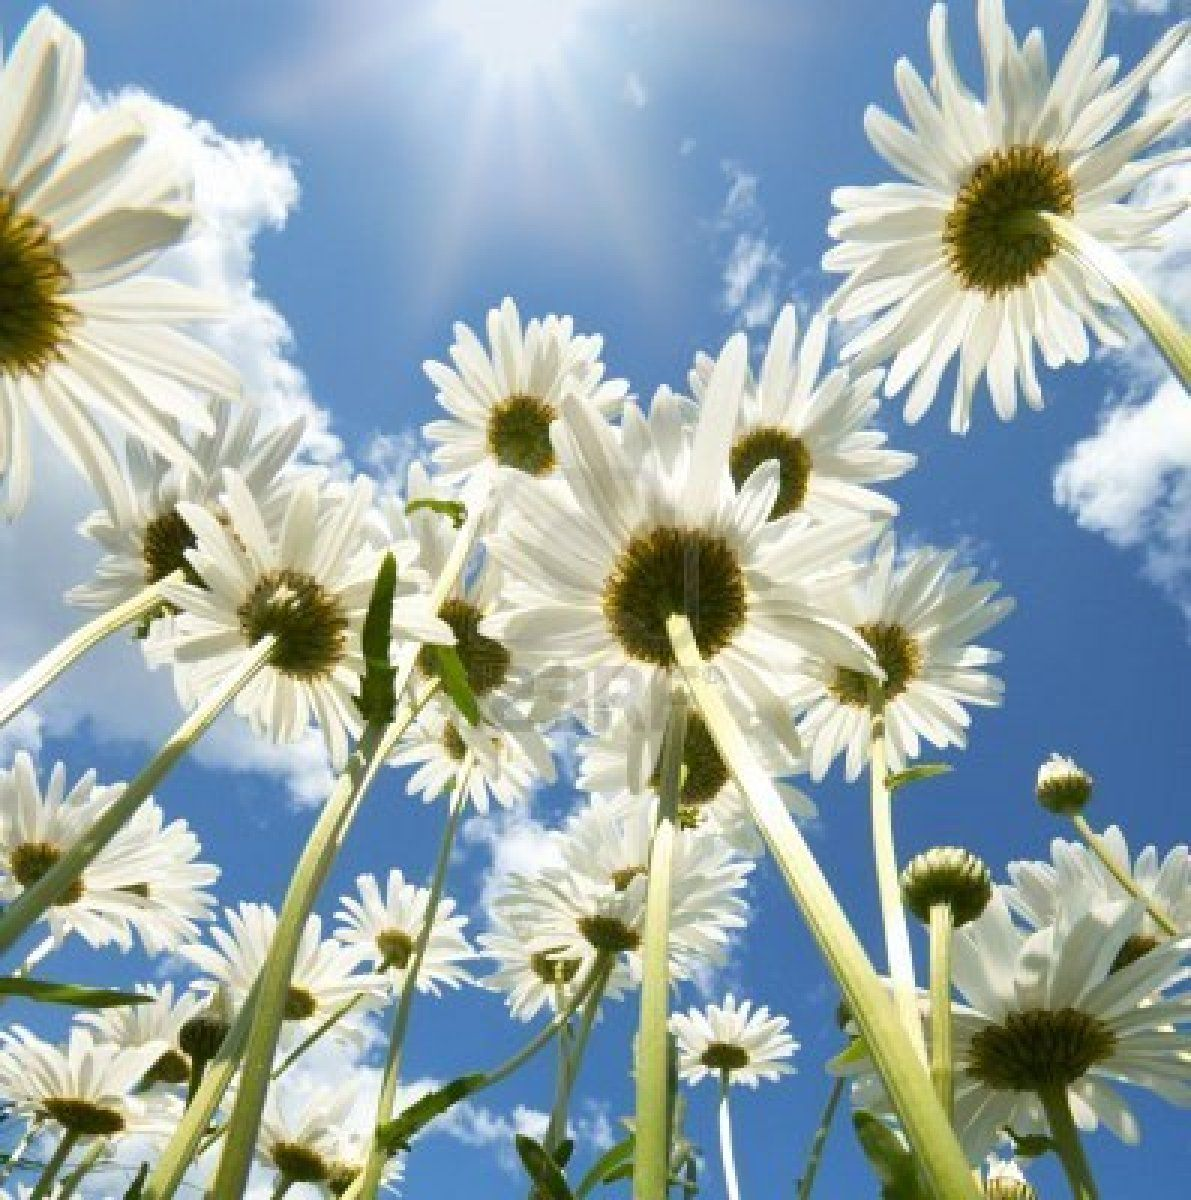 Pin by isthar on flores pinterest ground view of daisy flowers similar to the angle i have been using in my photography work izmirmasajfo